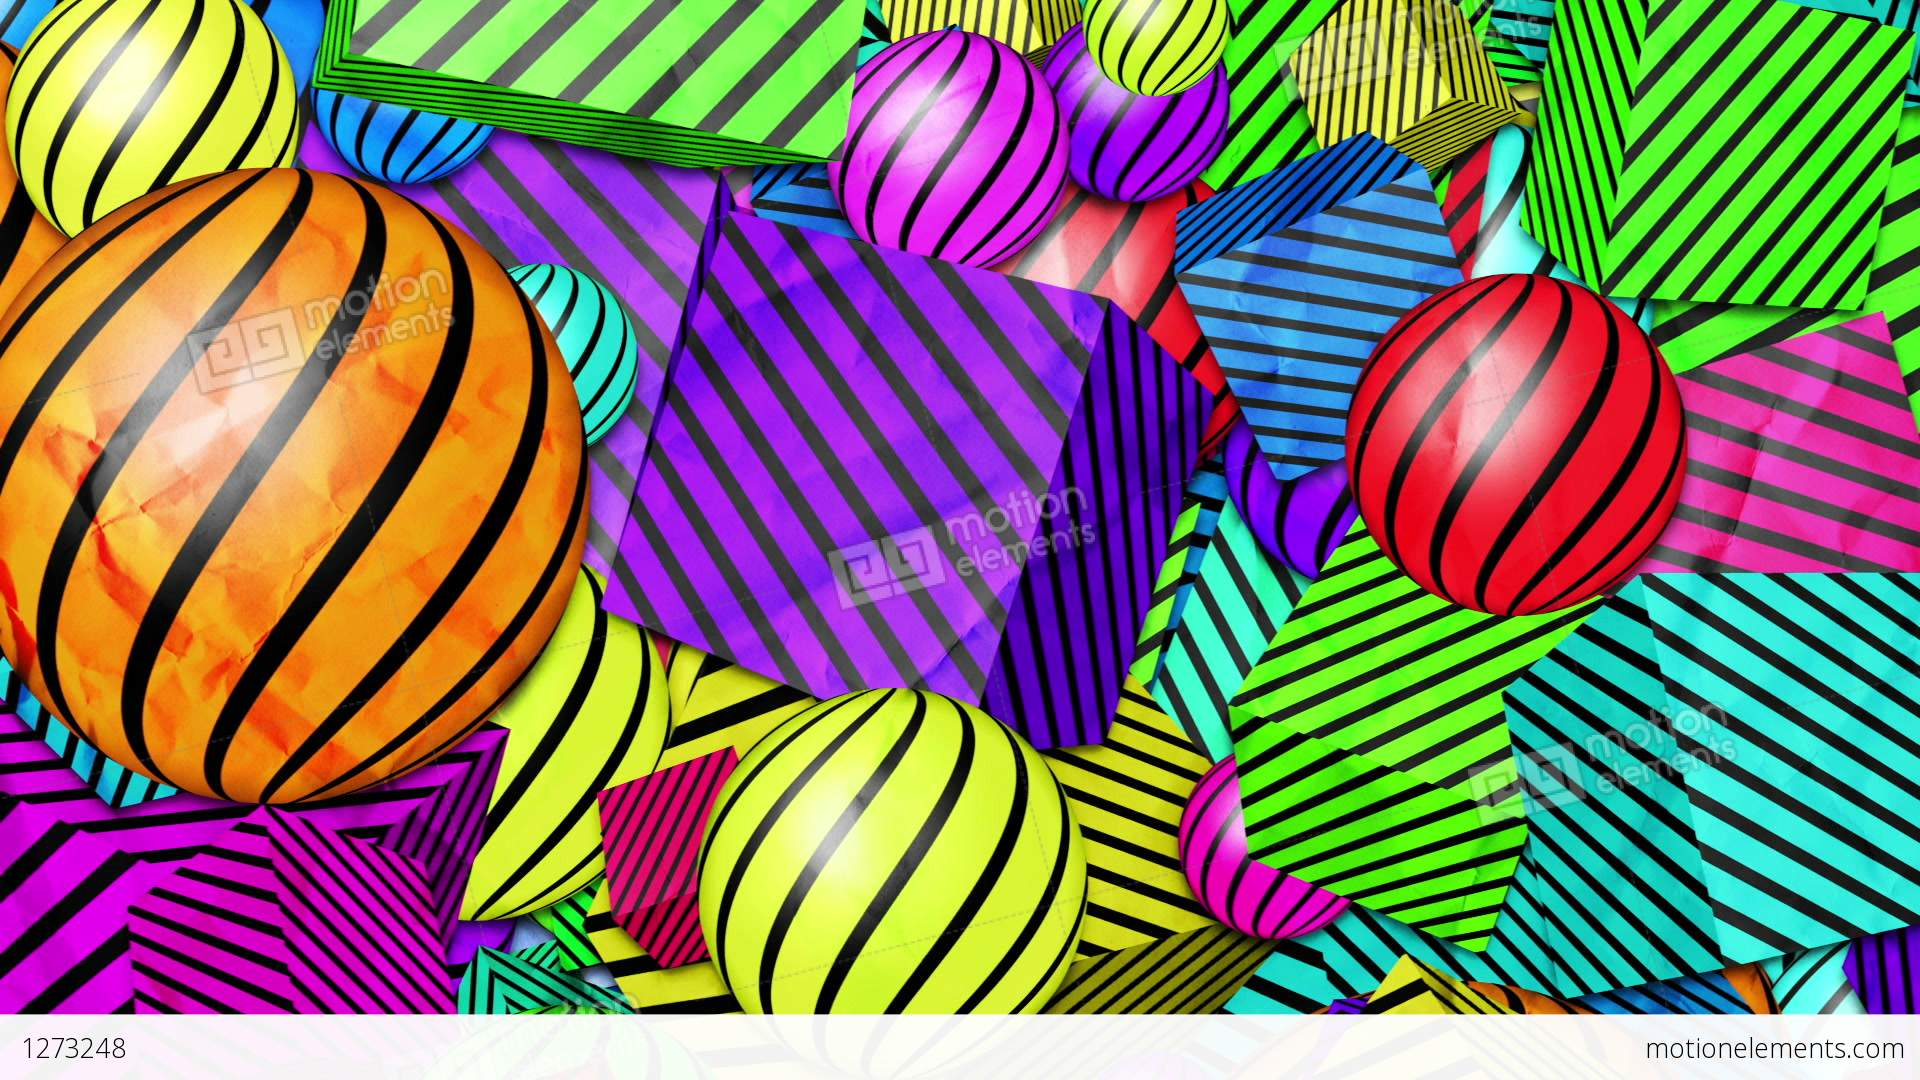 Group of Psychedelic Wallpaper 1017432